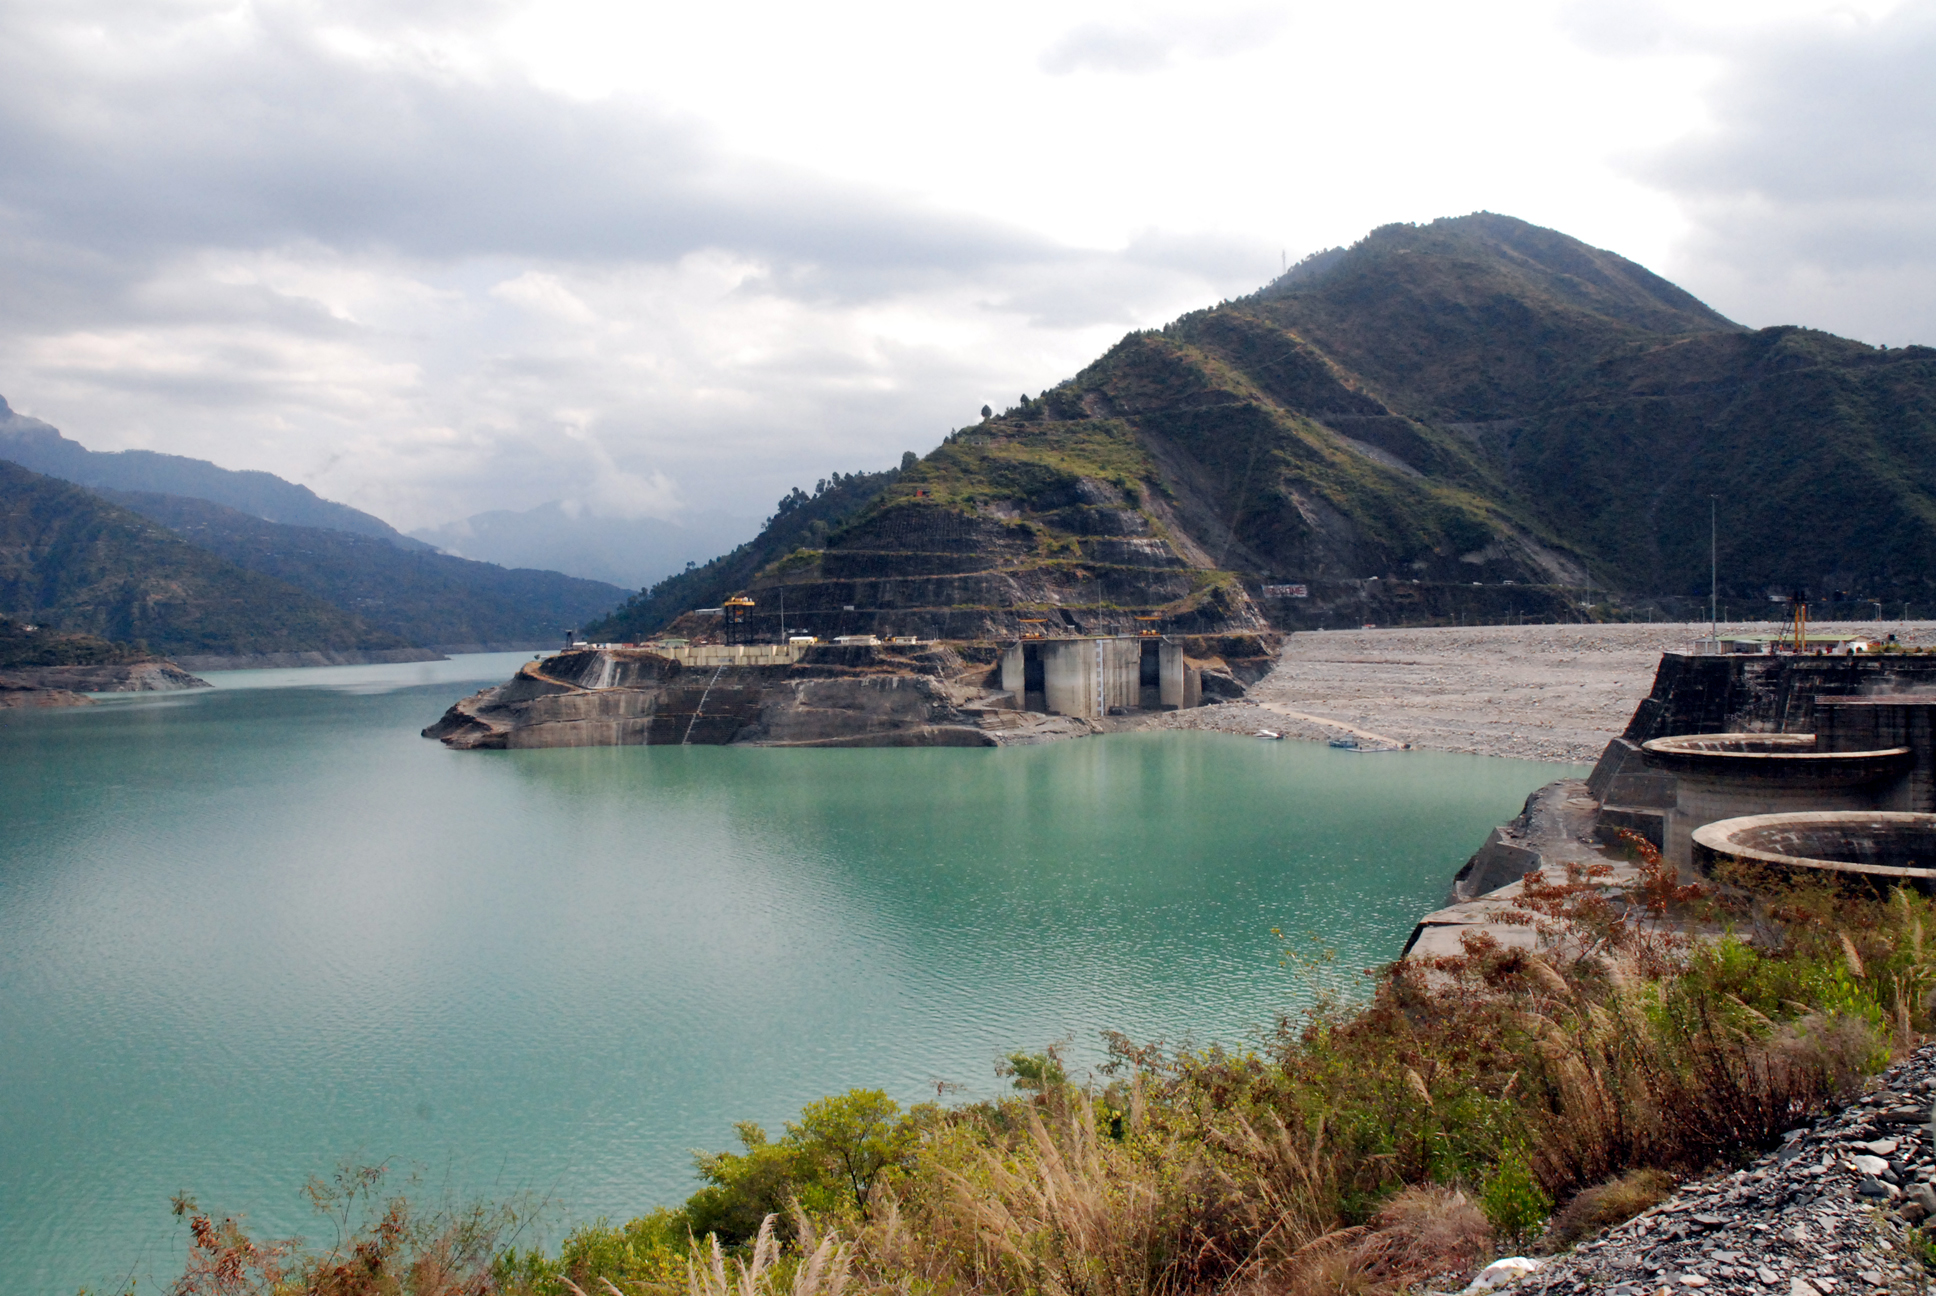 The river, the hills and the Tehri dam